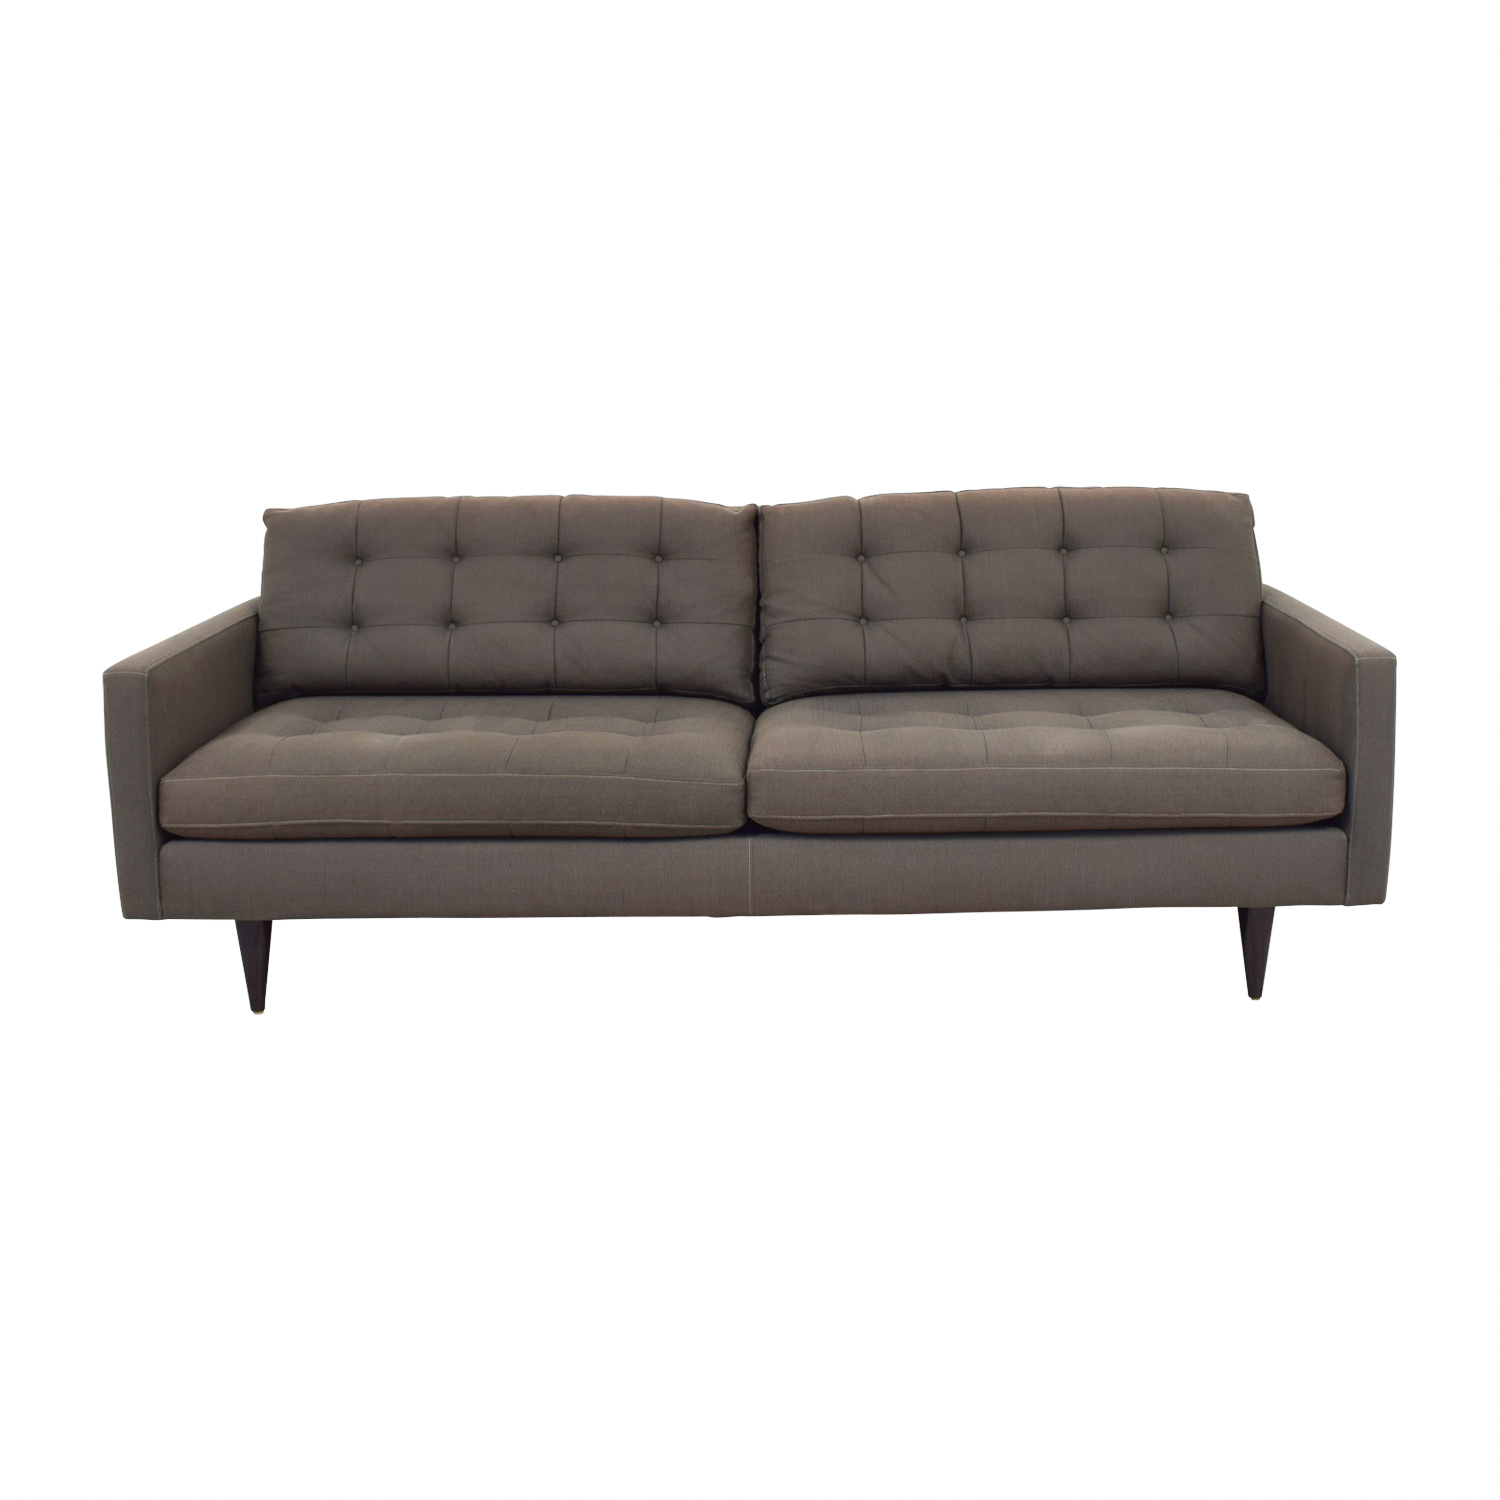 shop Crate & Barrel Mid Century Petrie Grey Tufted Sofa Crate & Barrel Classic Sofas